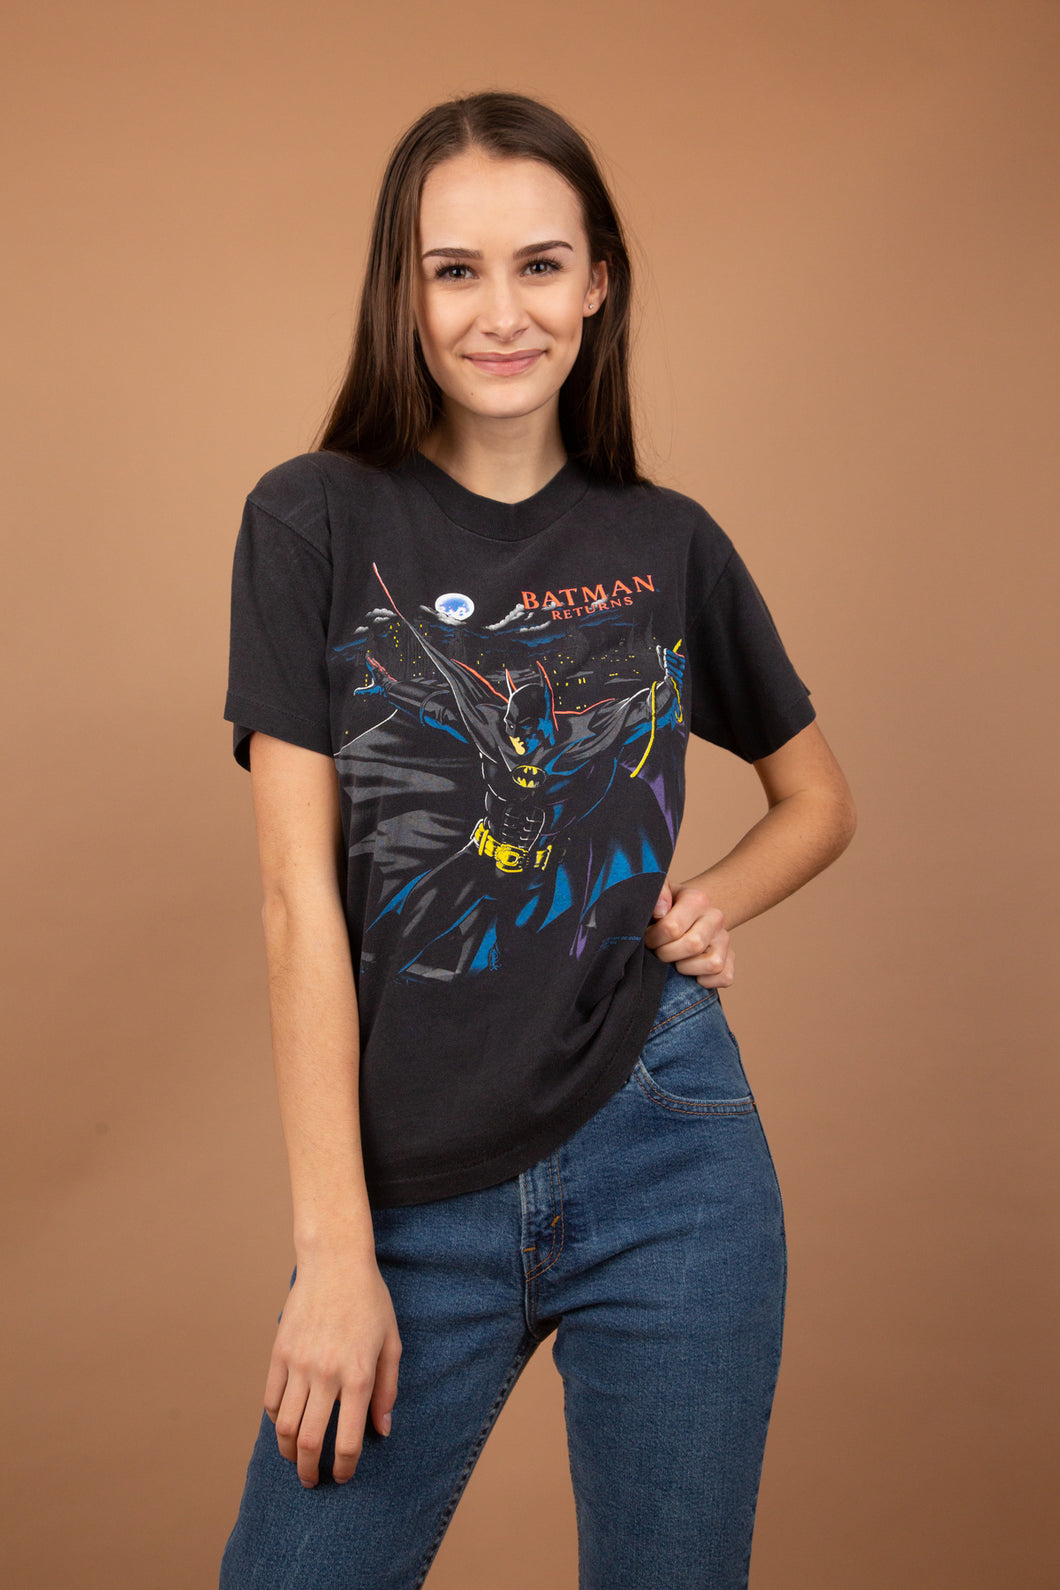 Faded black tee with a colourful vintage Batman print on the front, dated 1991 with 'Batman Returns' on the right chest.